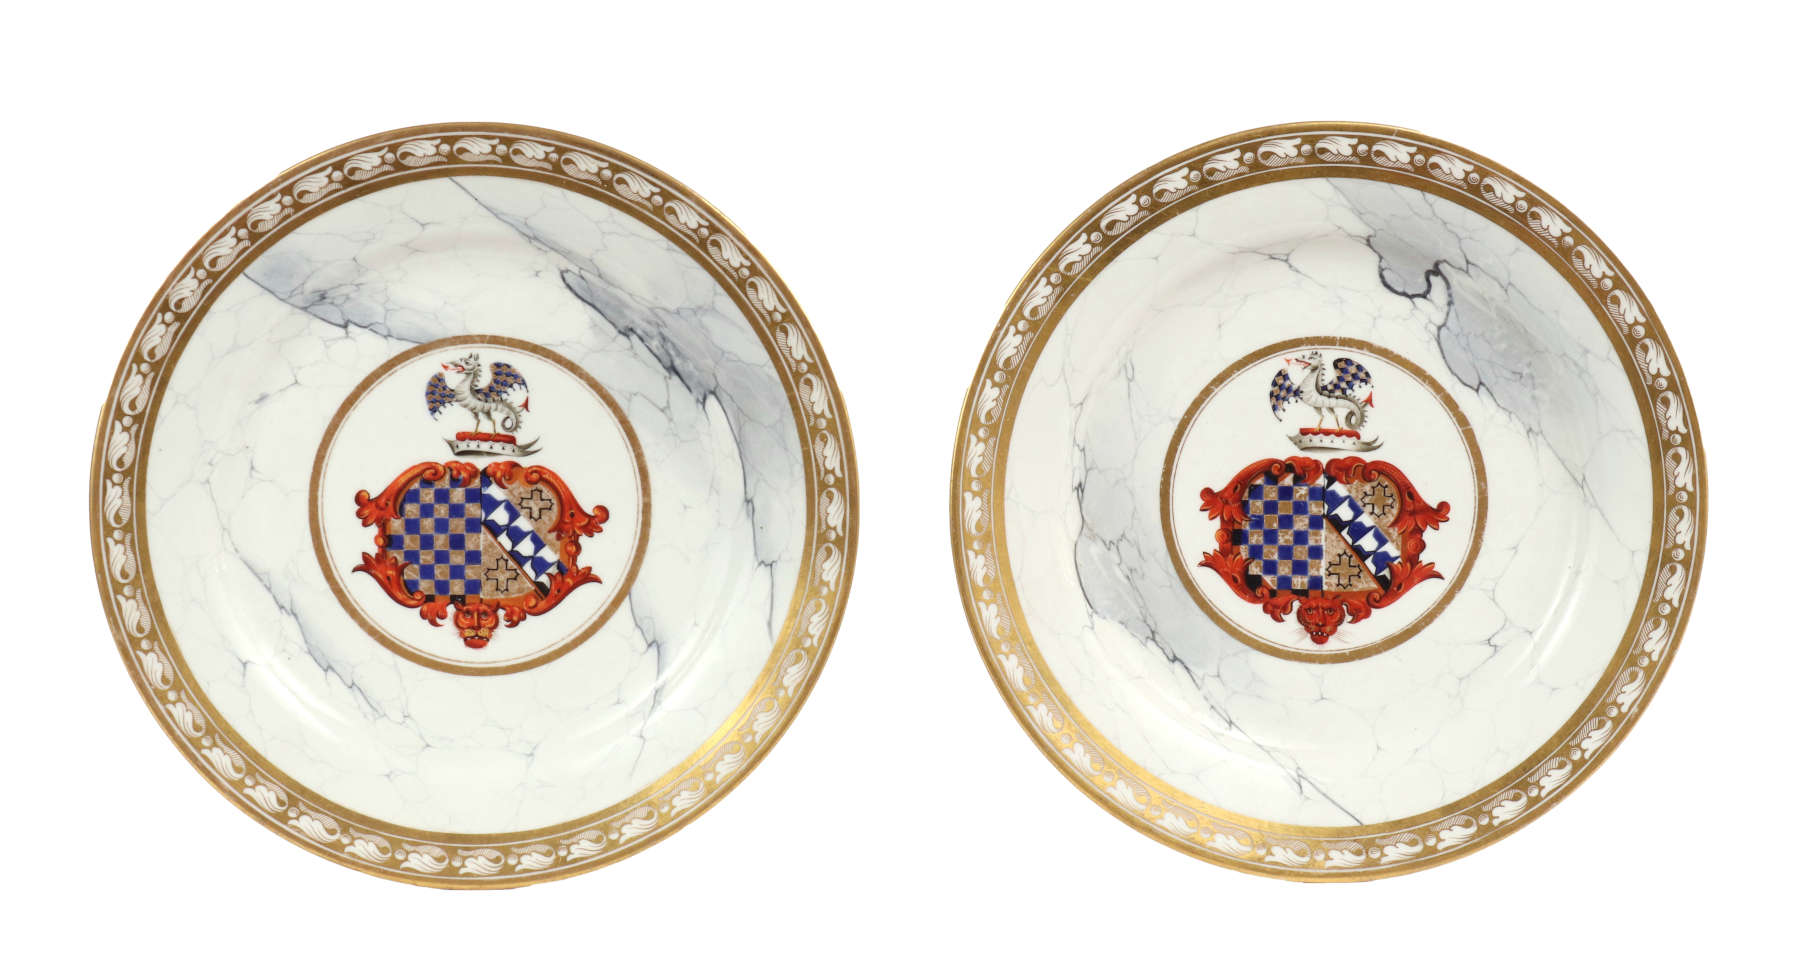 Pair of Barr, Flight & Barr Worcester Armorial Plates, c. 1810